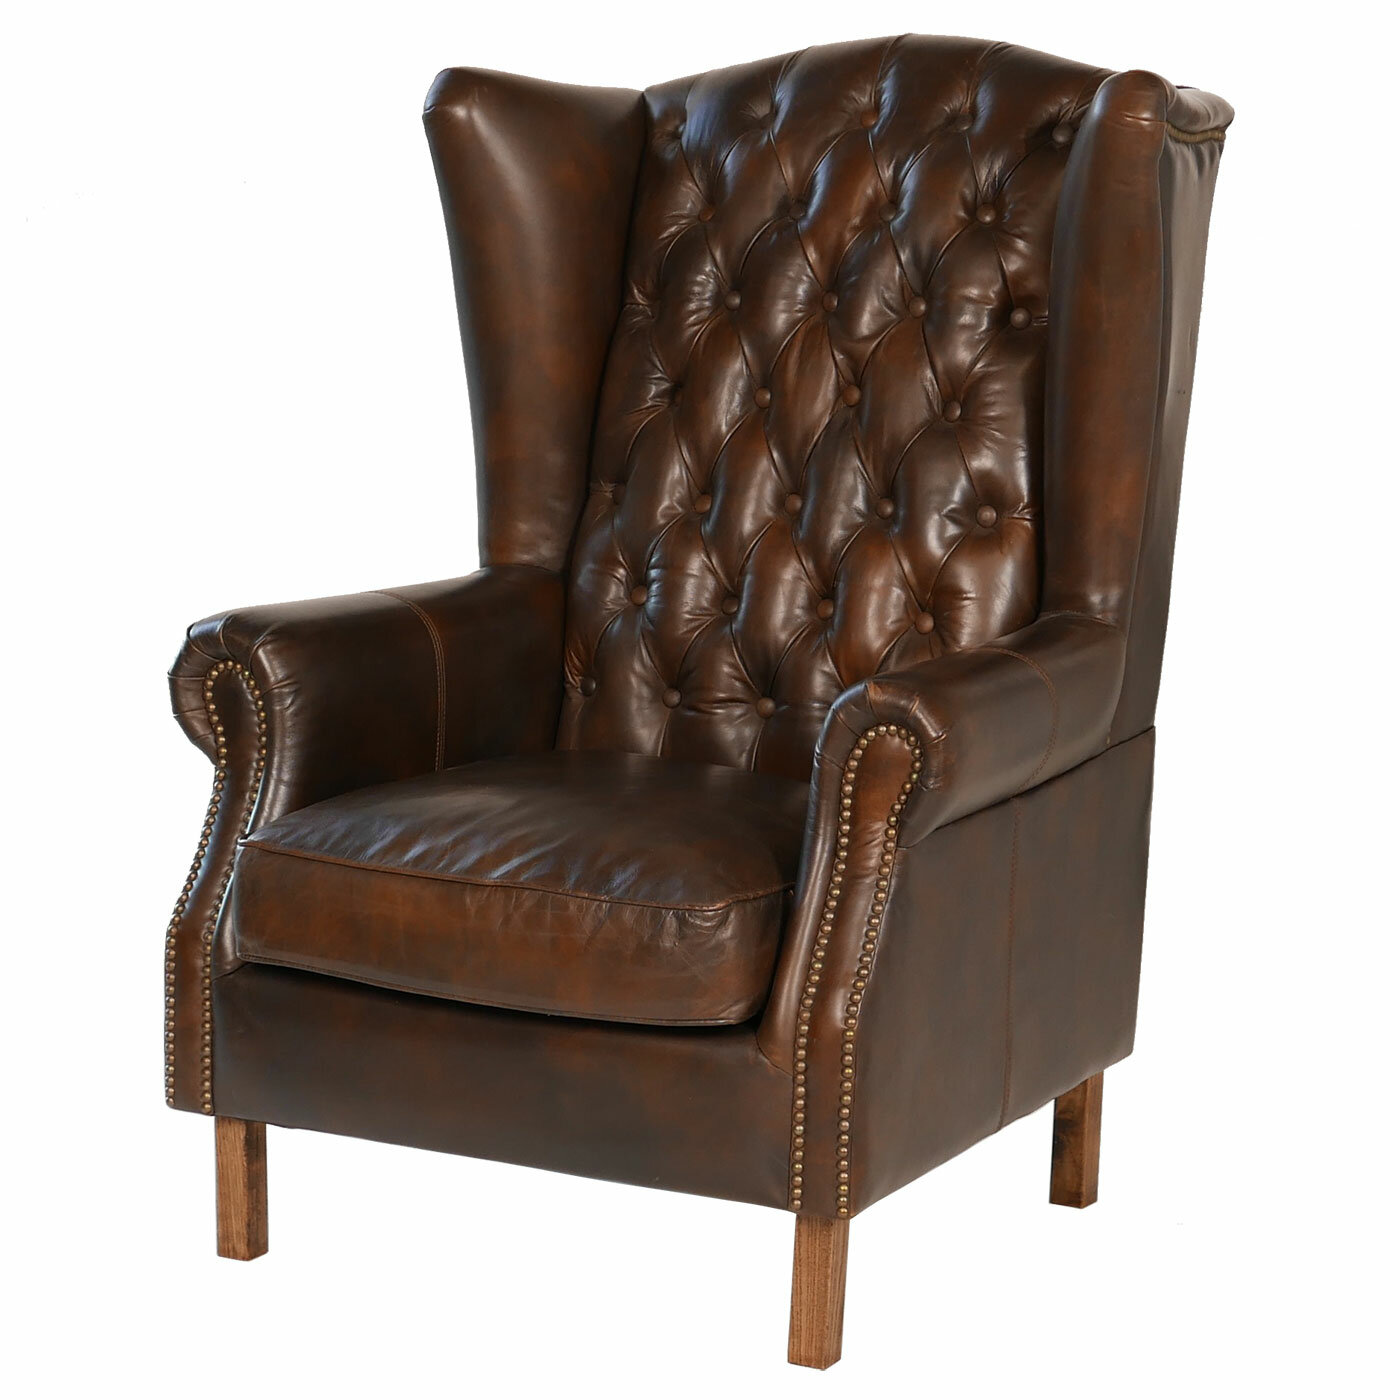 Fine Old World Wingback Chair Spiritservingveterans Wood Chair Design Ideas Spiritservingveteransorg